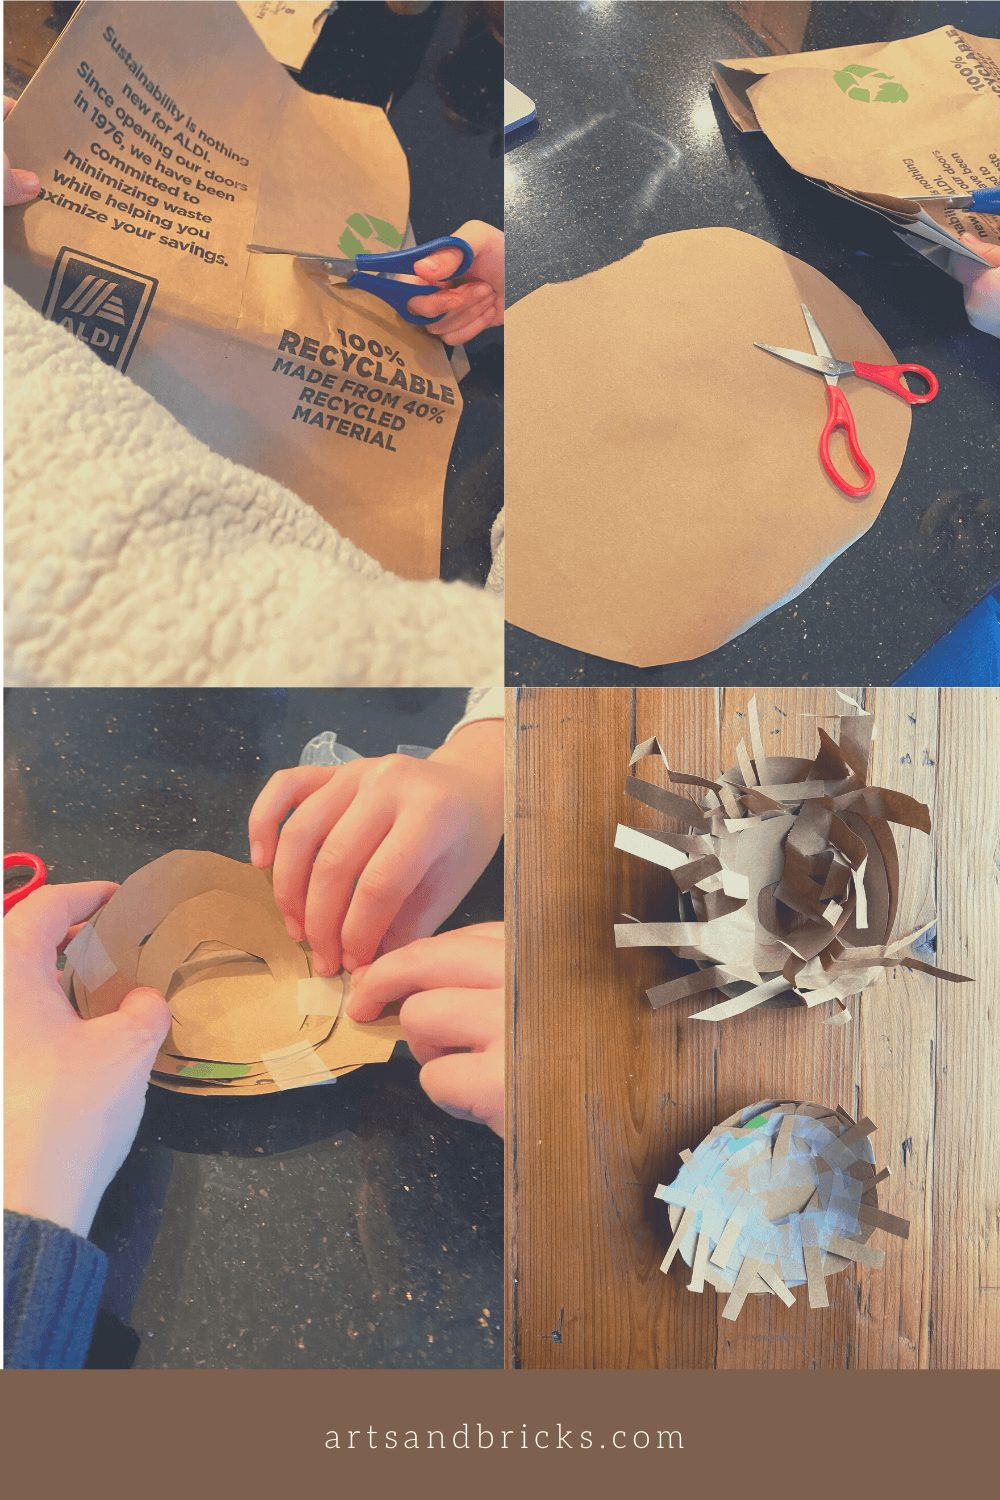 Directions on how to make a nest from a paper bag